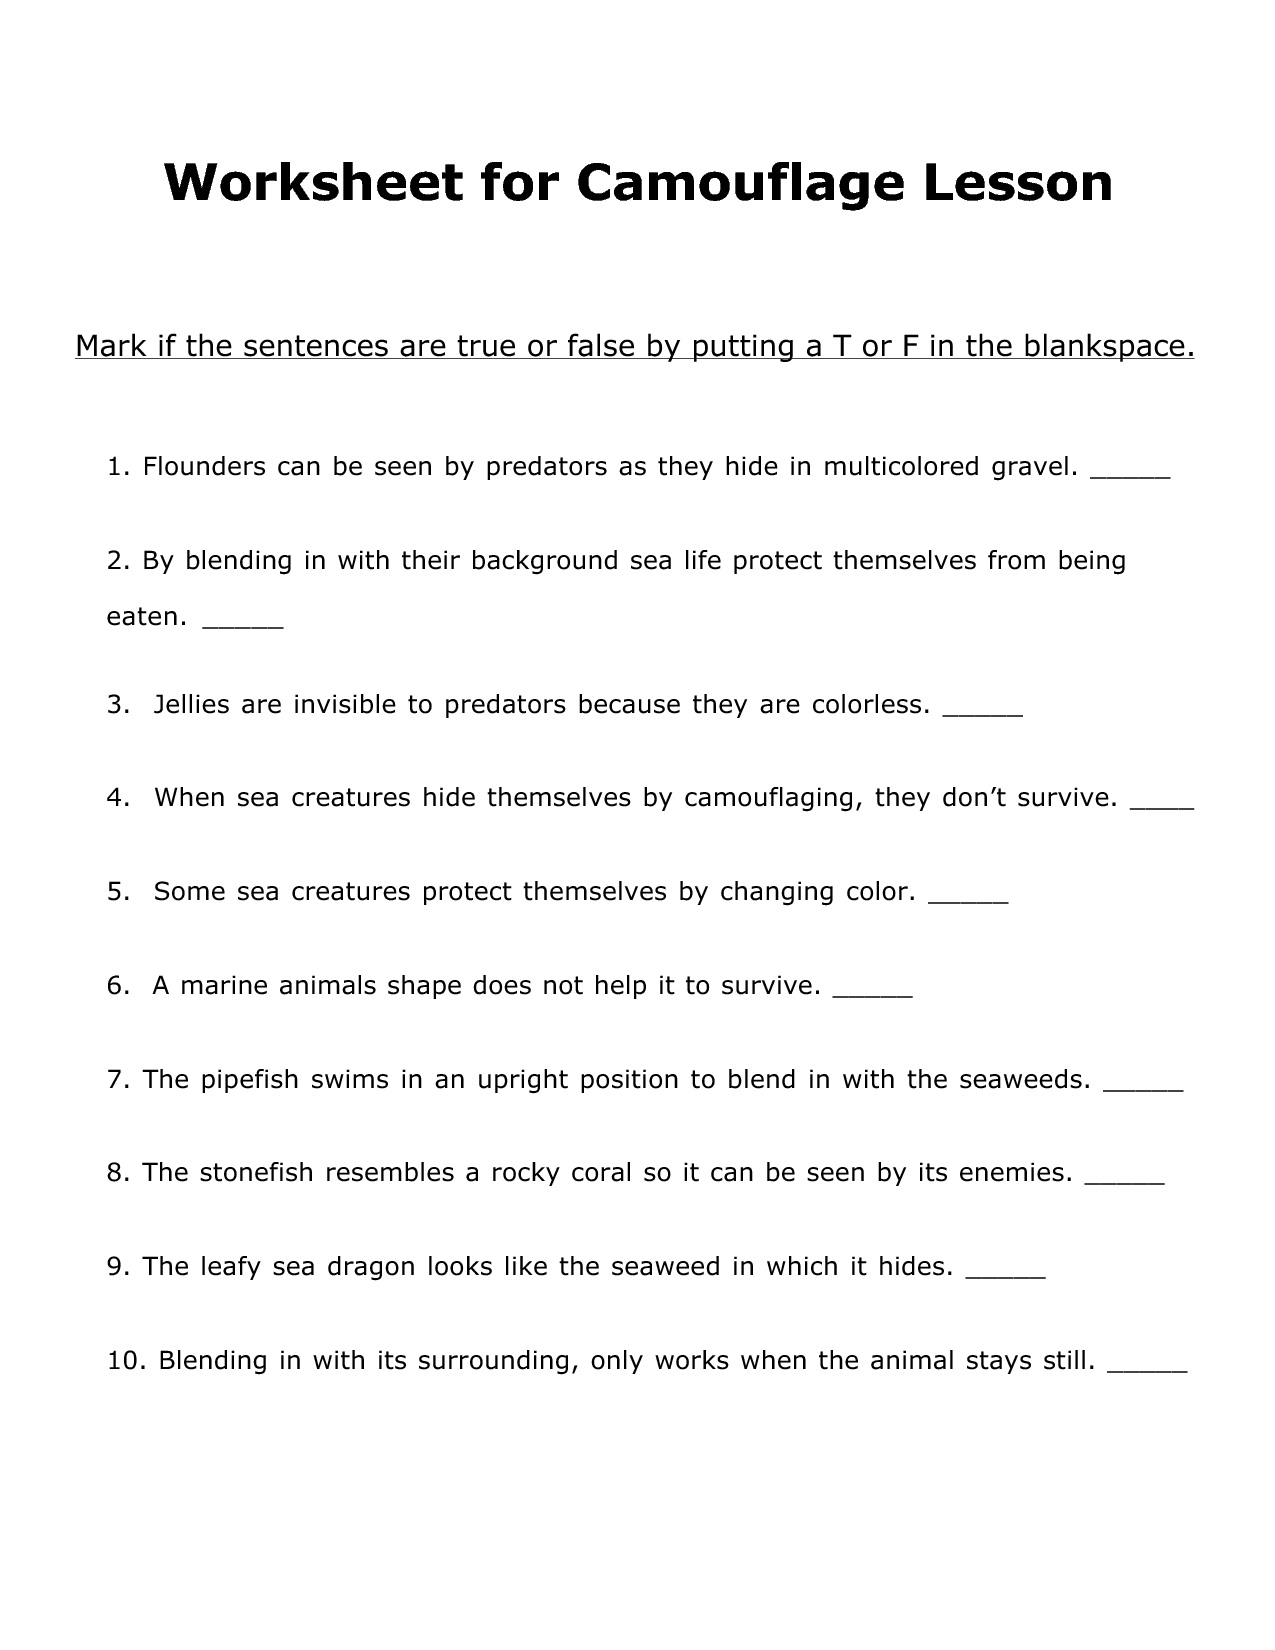 Worksheet Camouflage